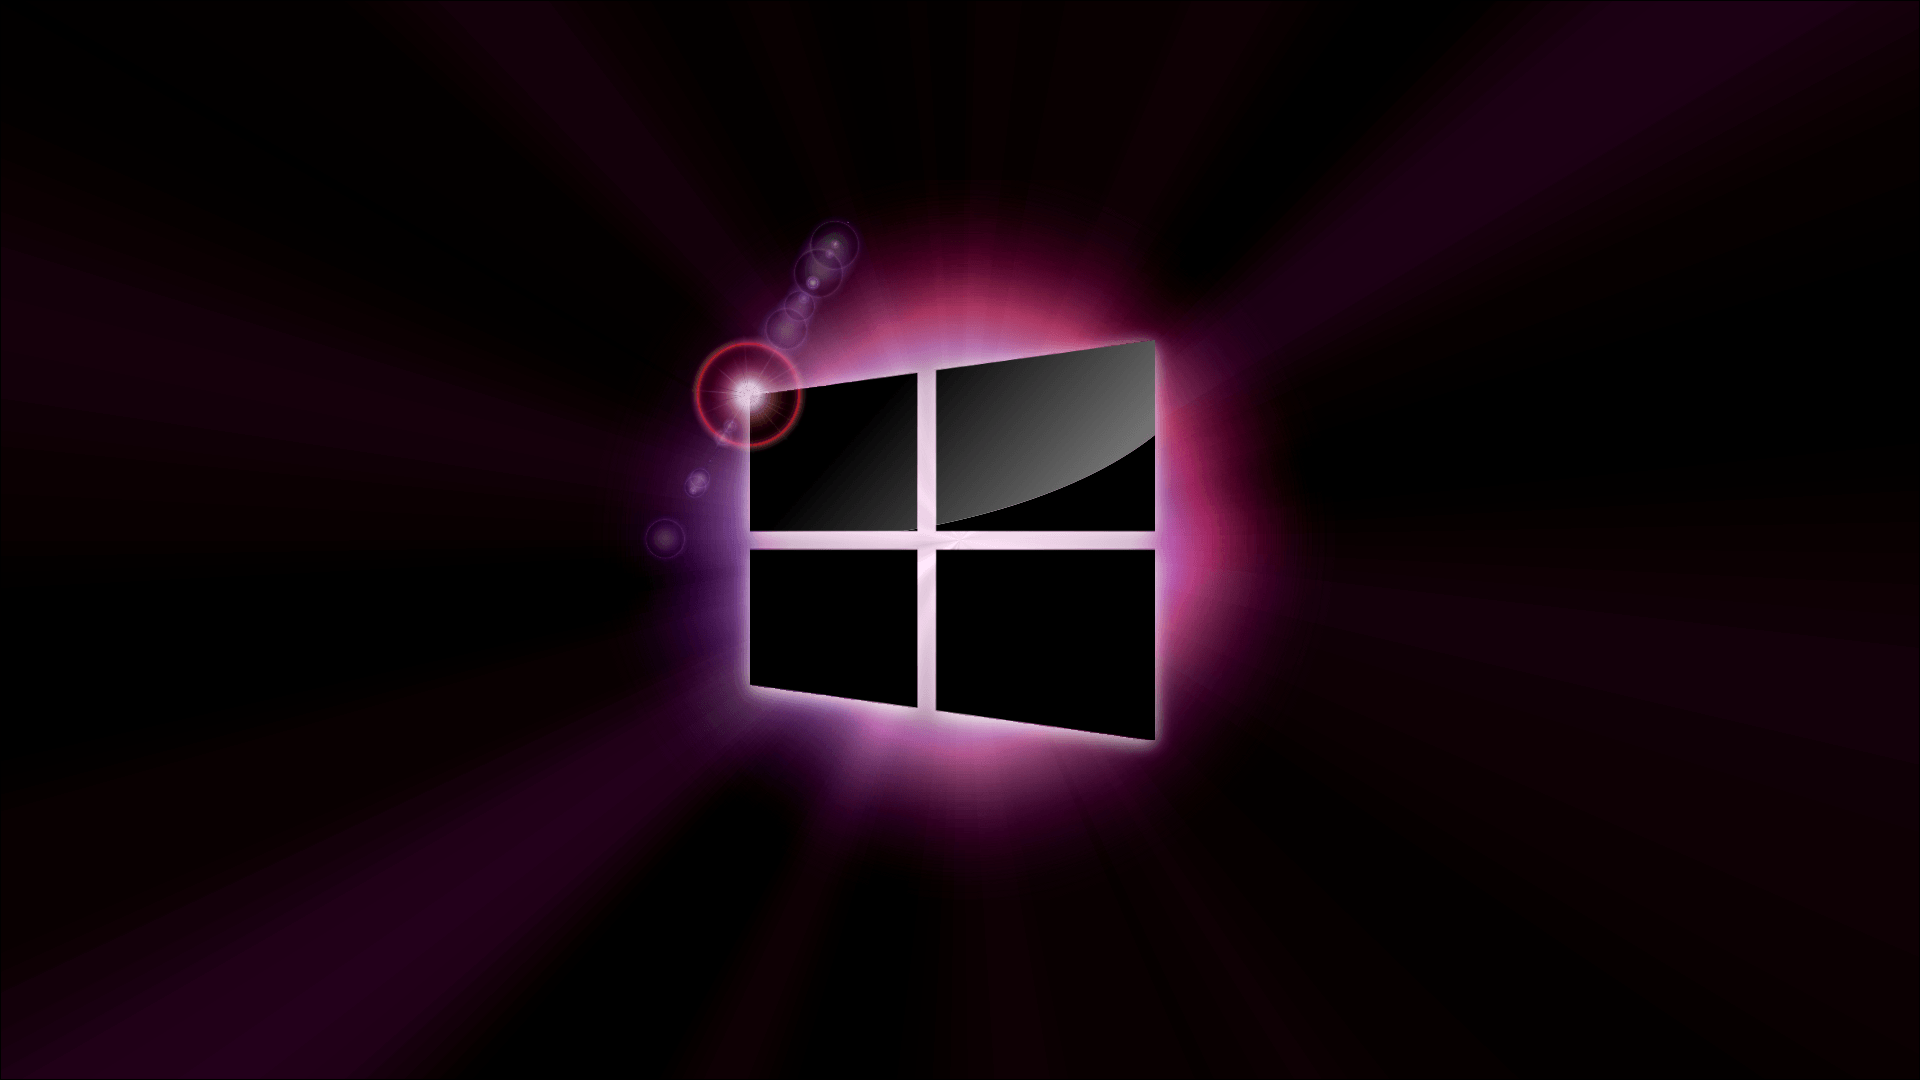 Wallpapers For Hd Windows 8 Pro